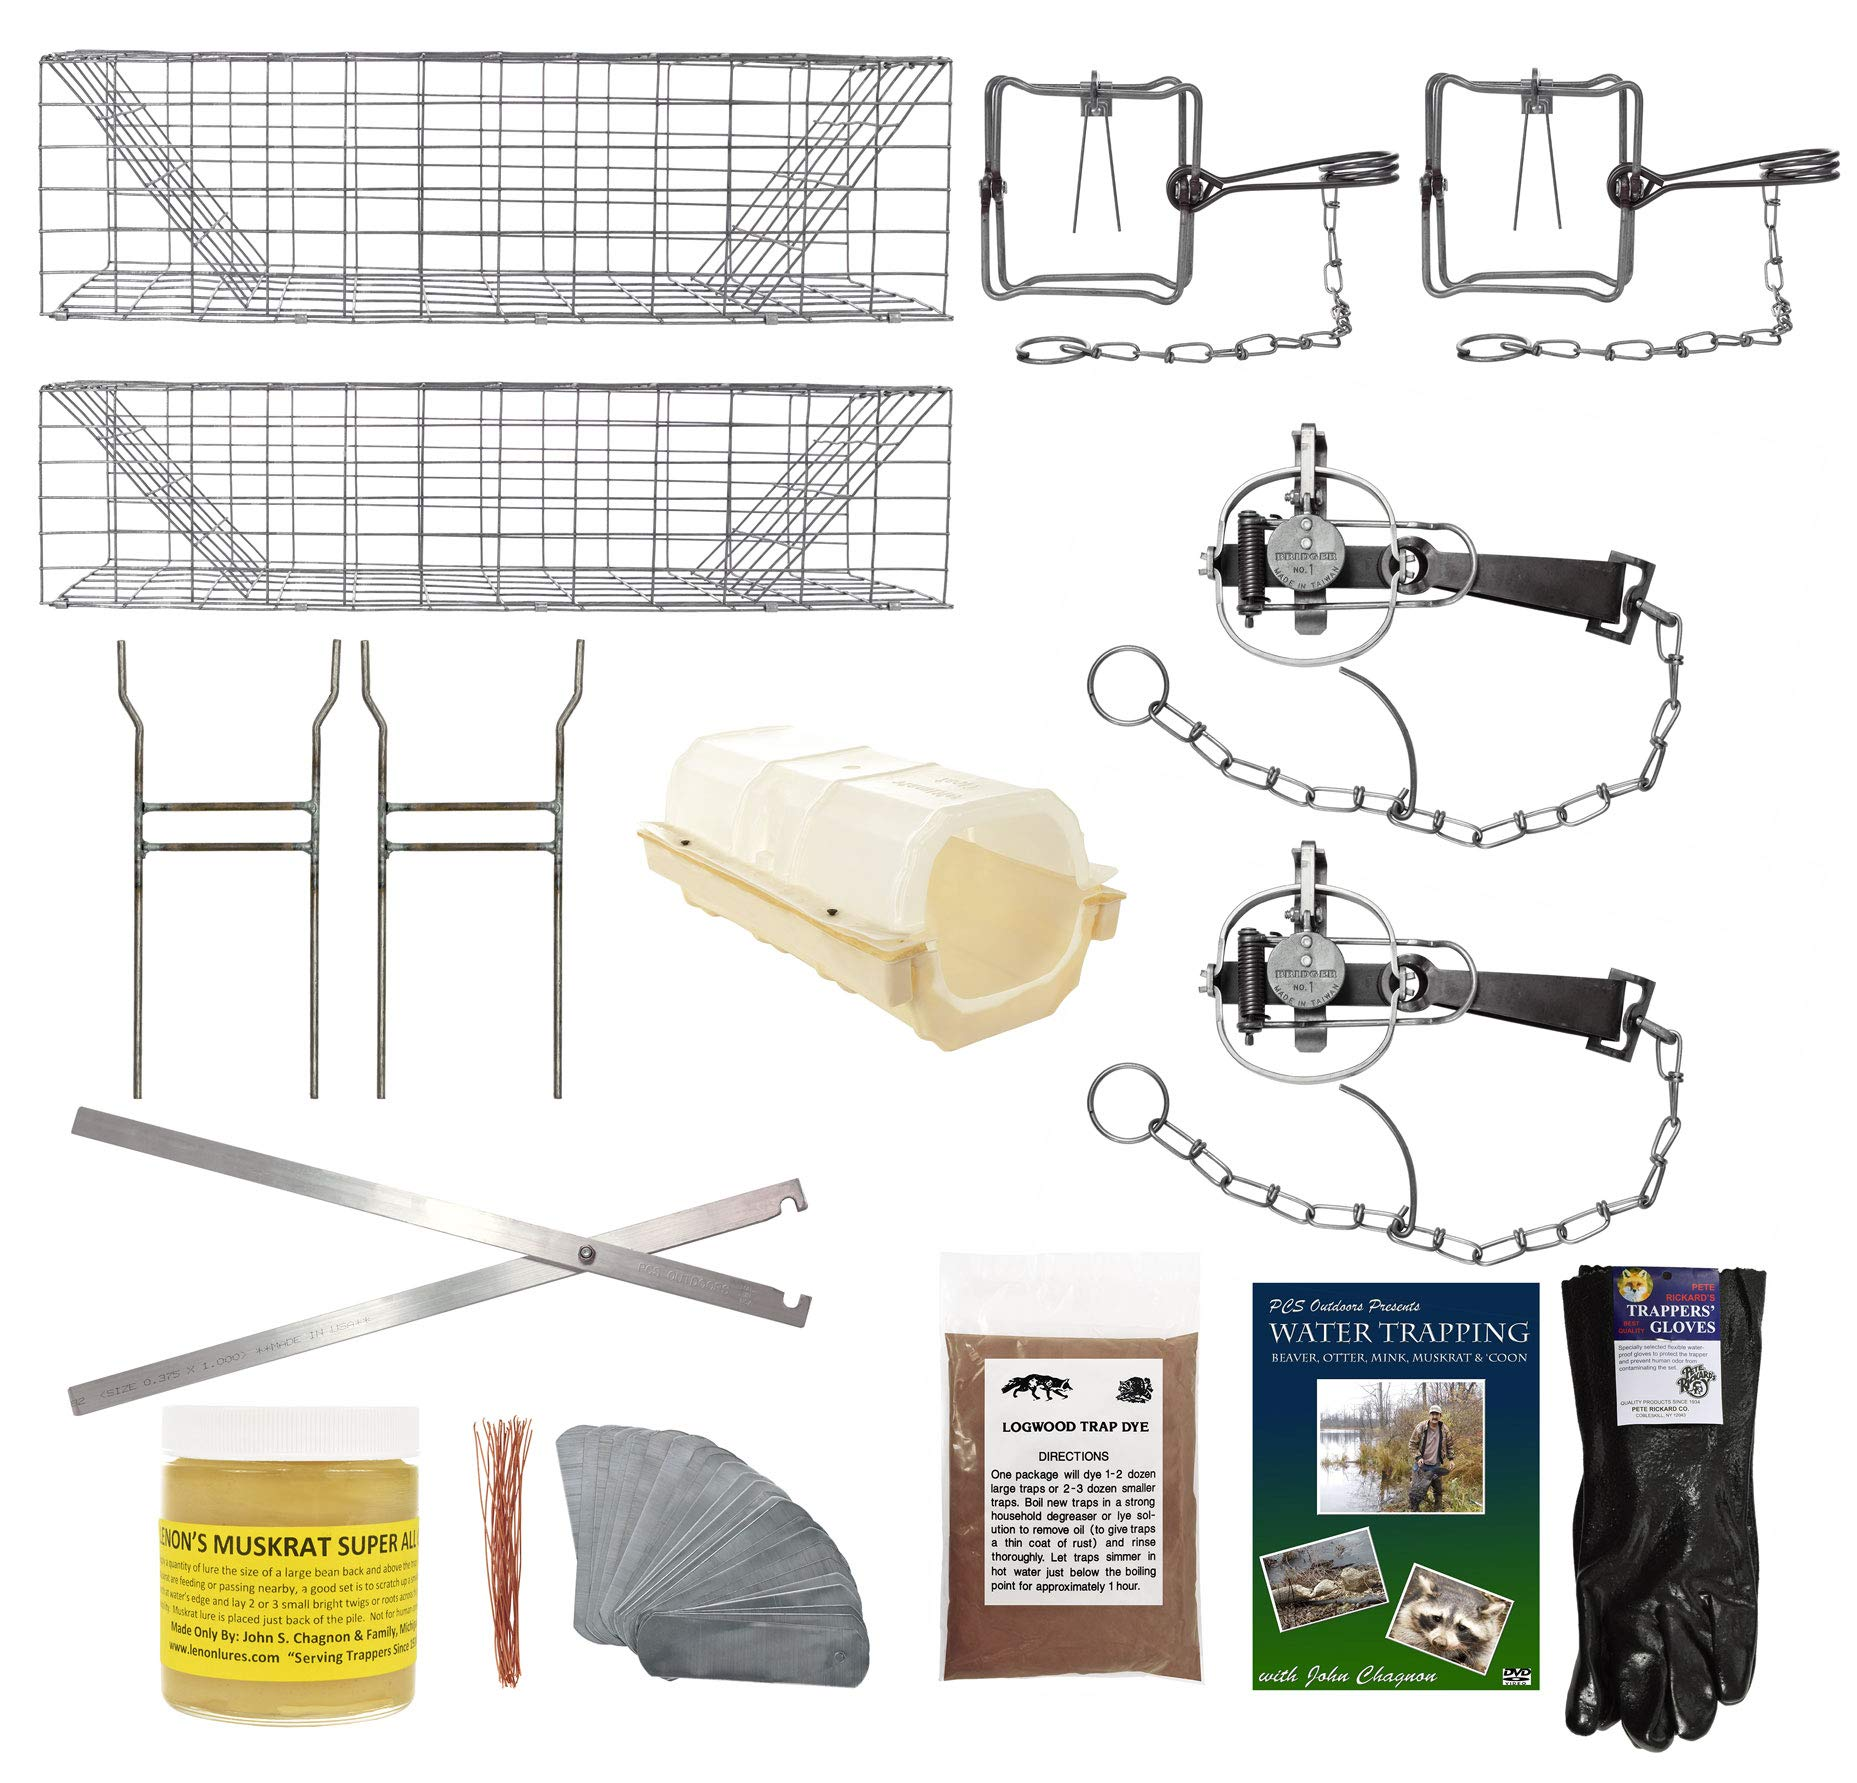 PcsOutdoors Standard Muskrat Trapping Starter Kit (14 Pieces) USA Made Kit